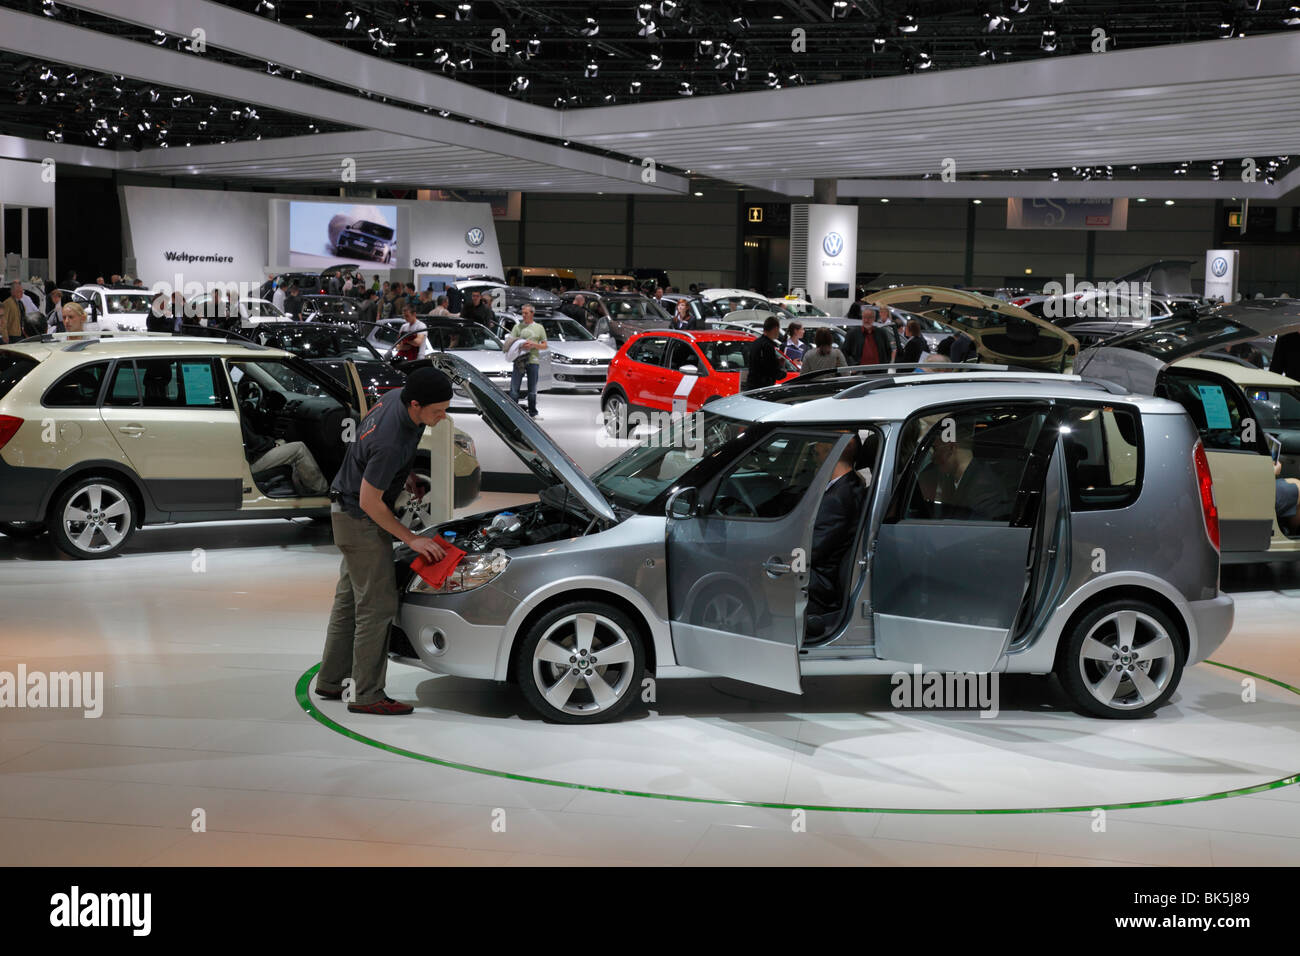 Skoda Roomster at the Auto Mobil International (AMI) - Motor Show 2010 in Leipzig, Germany - Stock Image